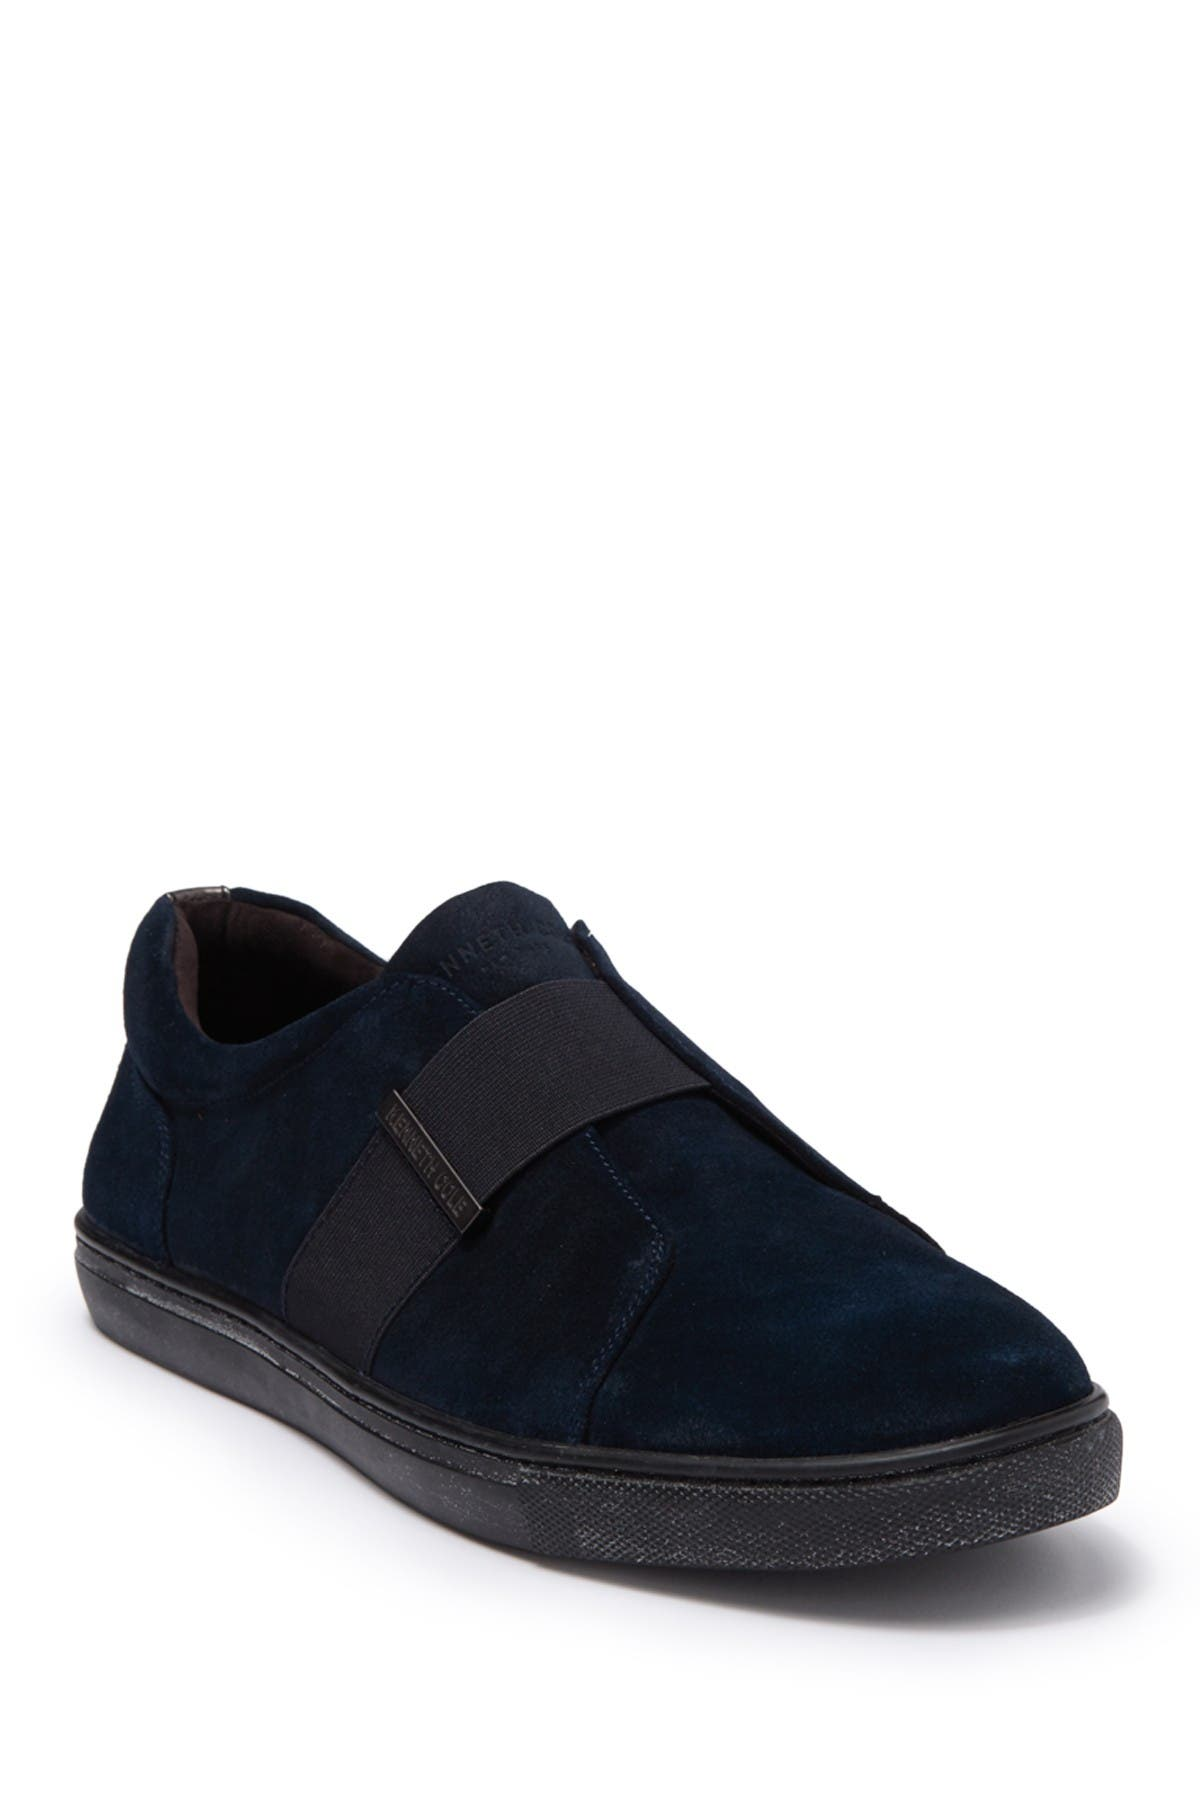 Image of Kenneth Cole New York Slip-On Sneaker